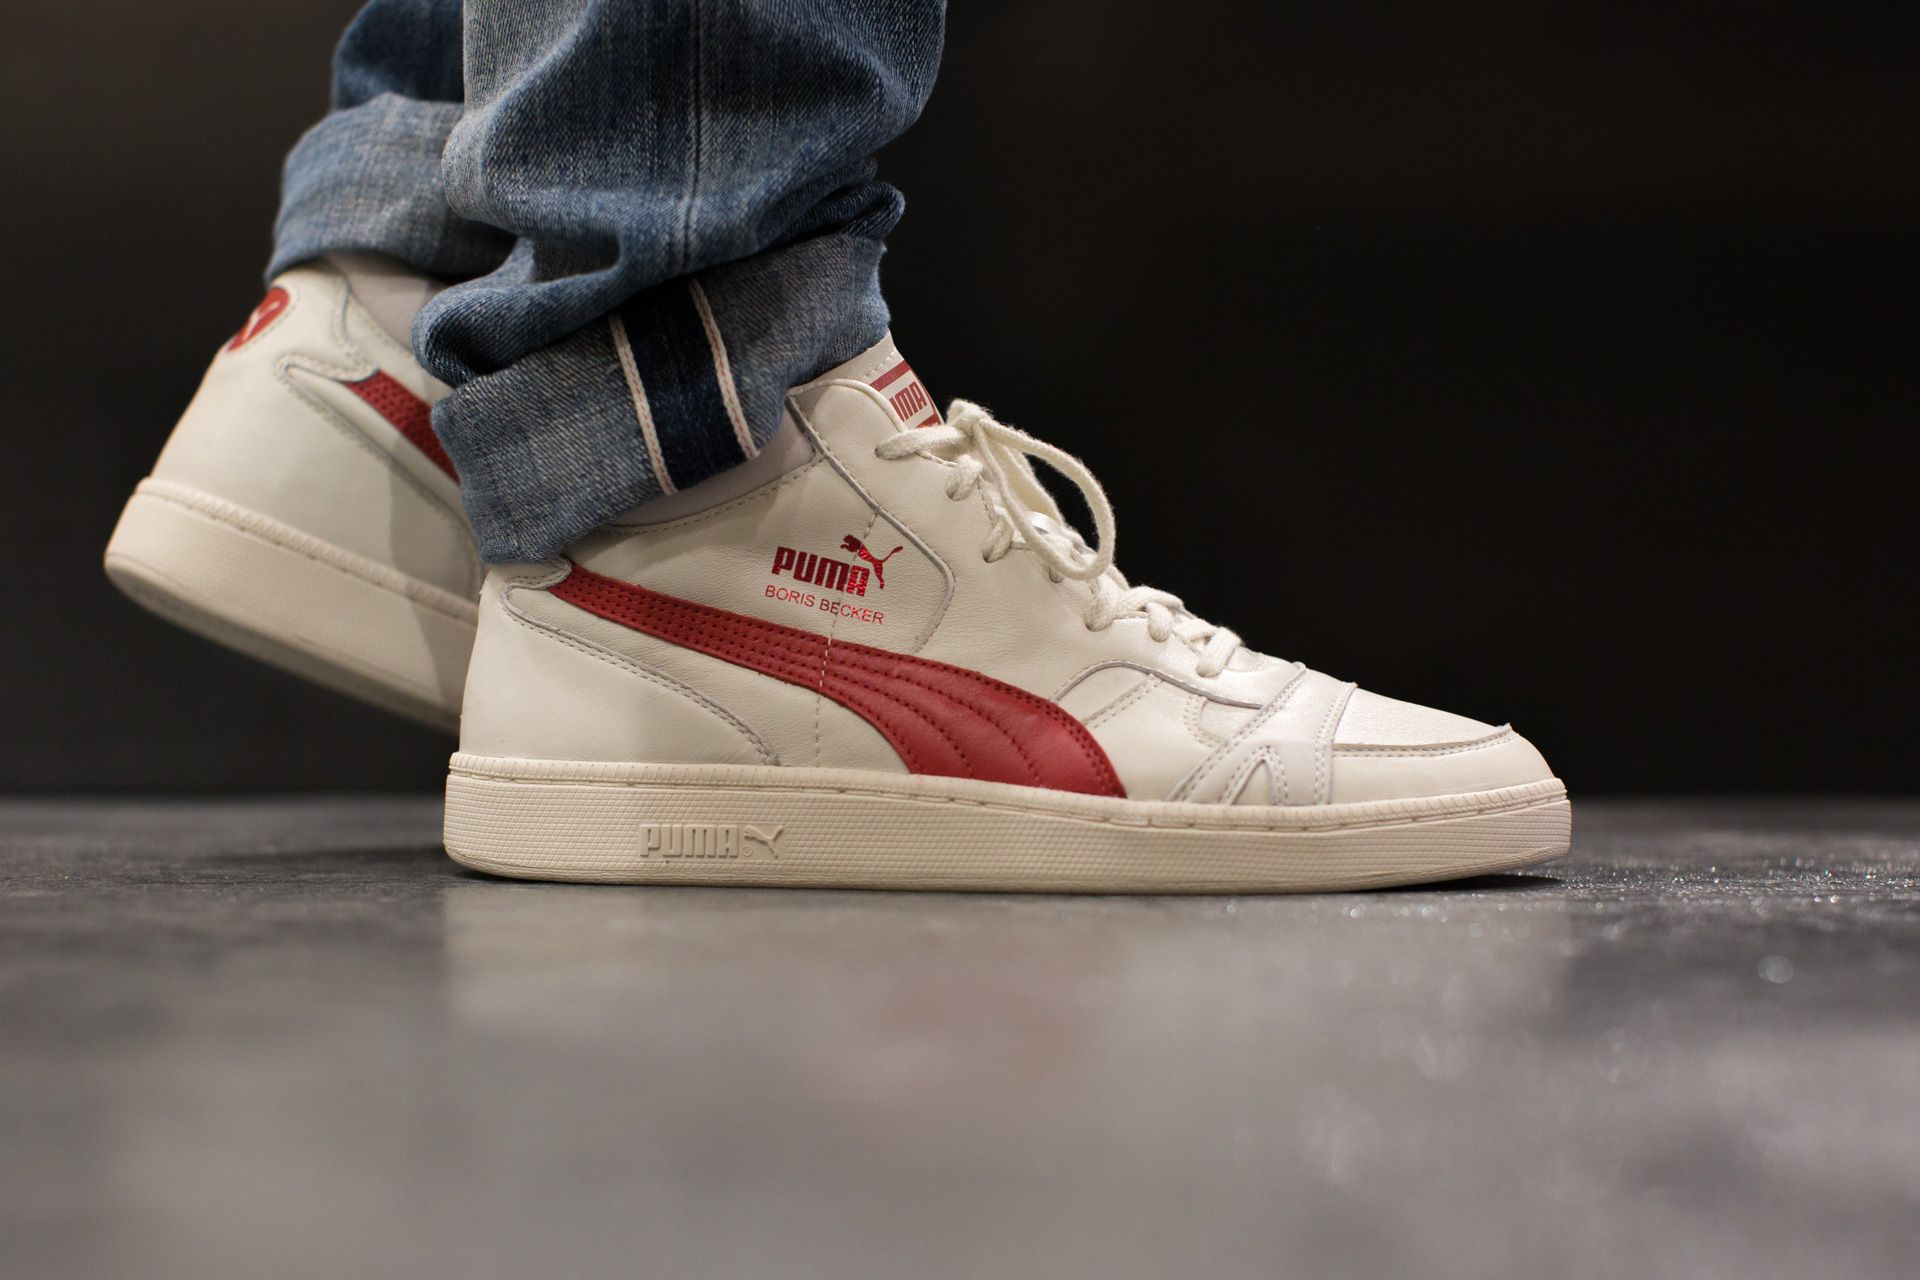 PUMA BECKER LEATHER WHIPSER WHITE available at tint